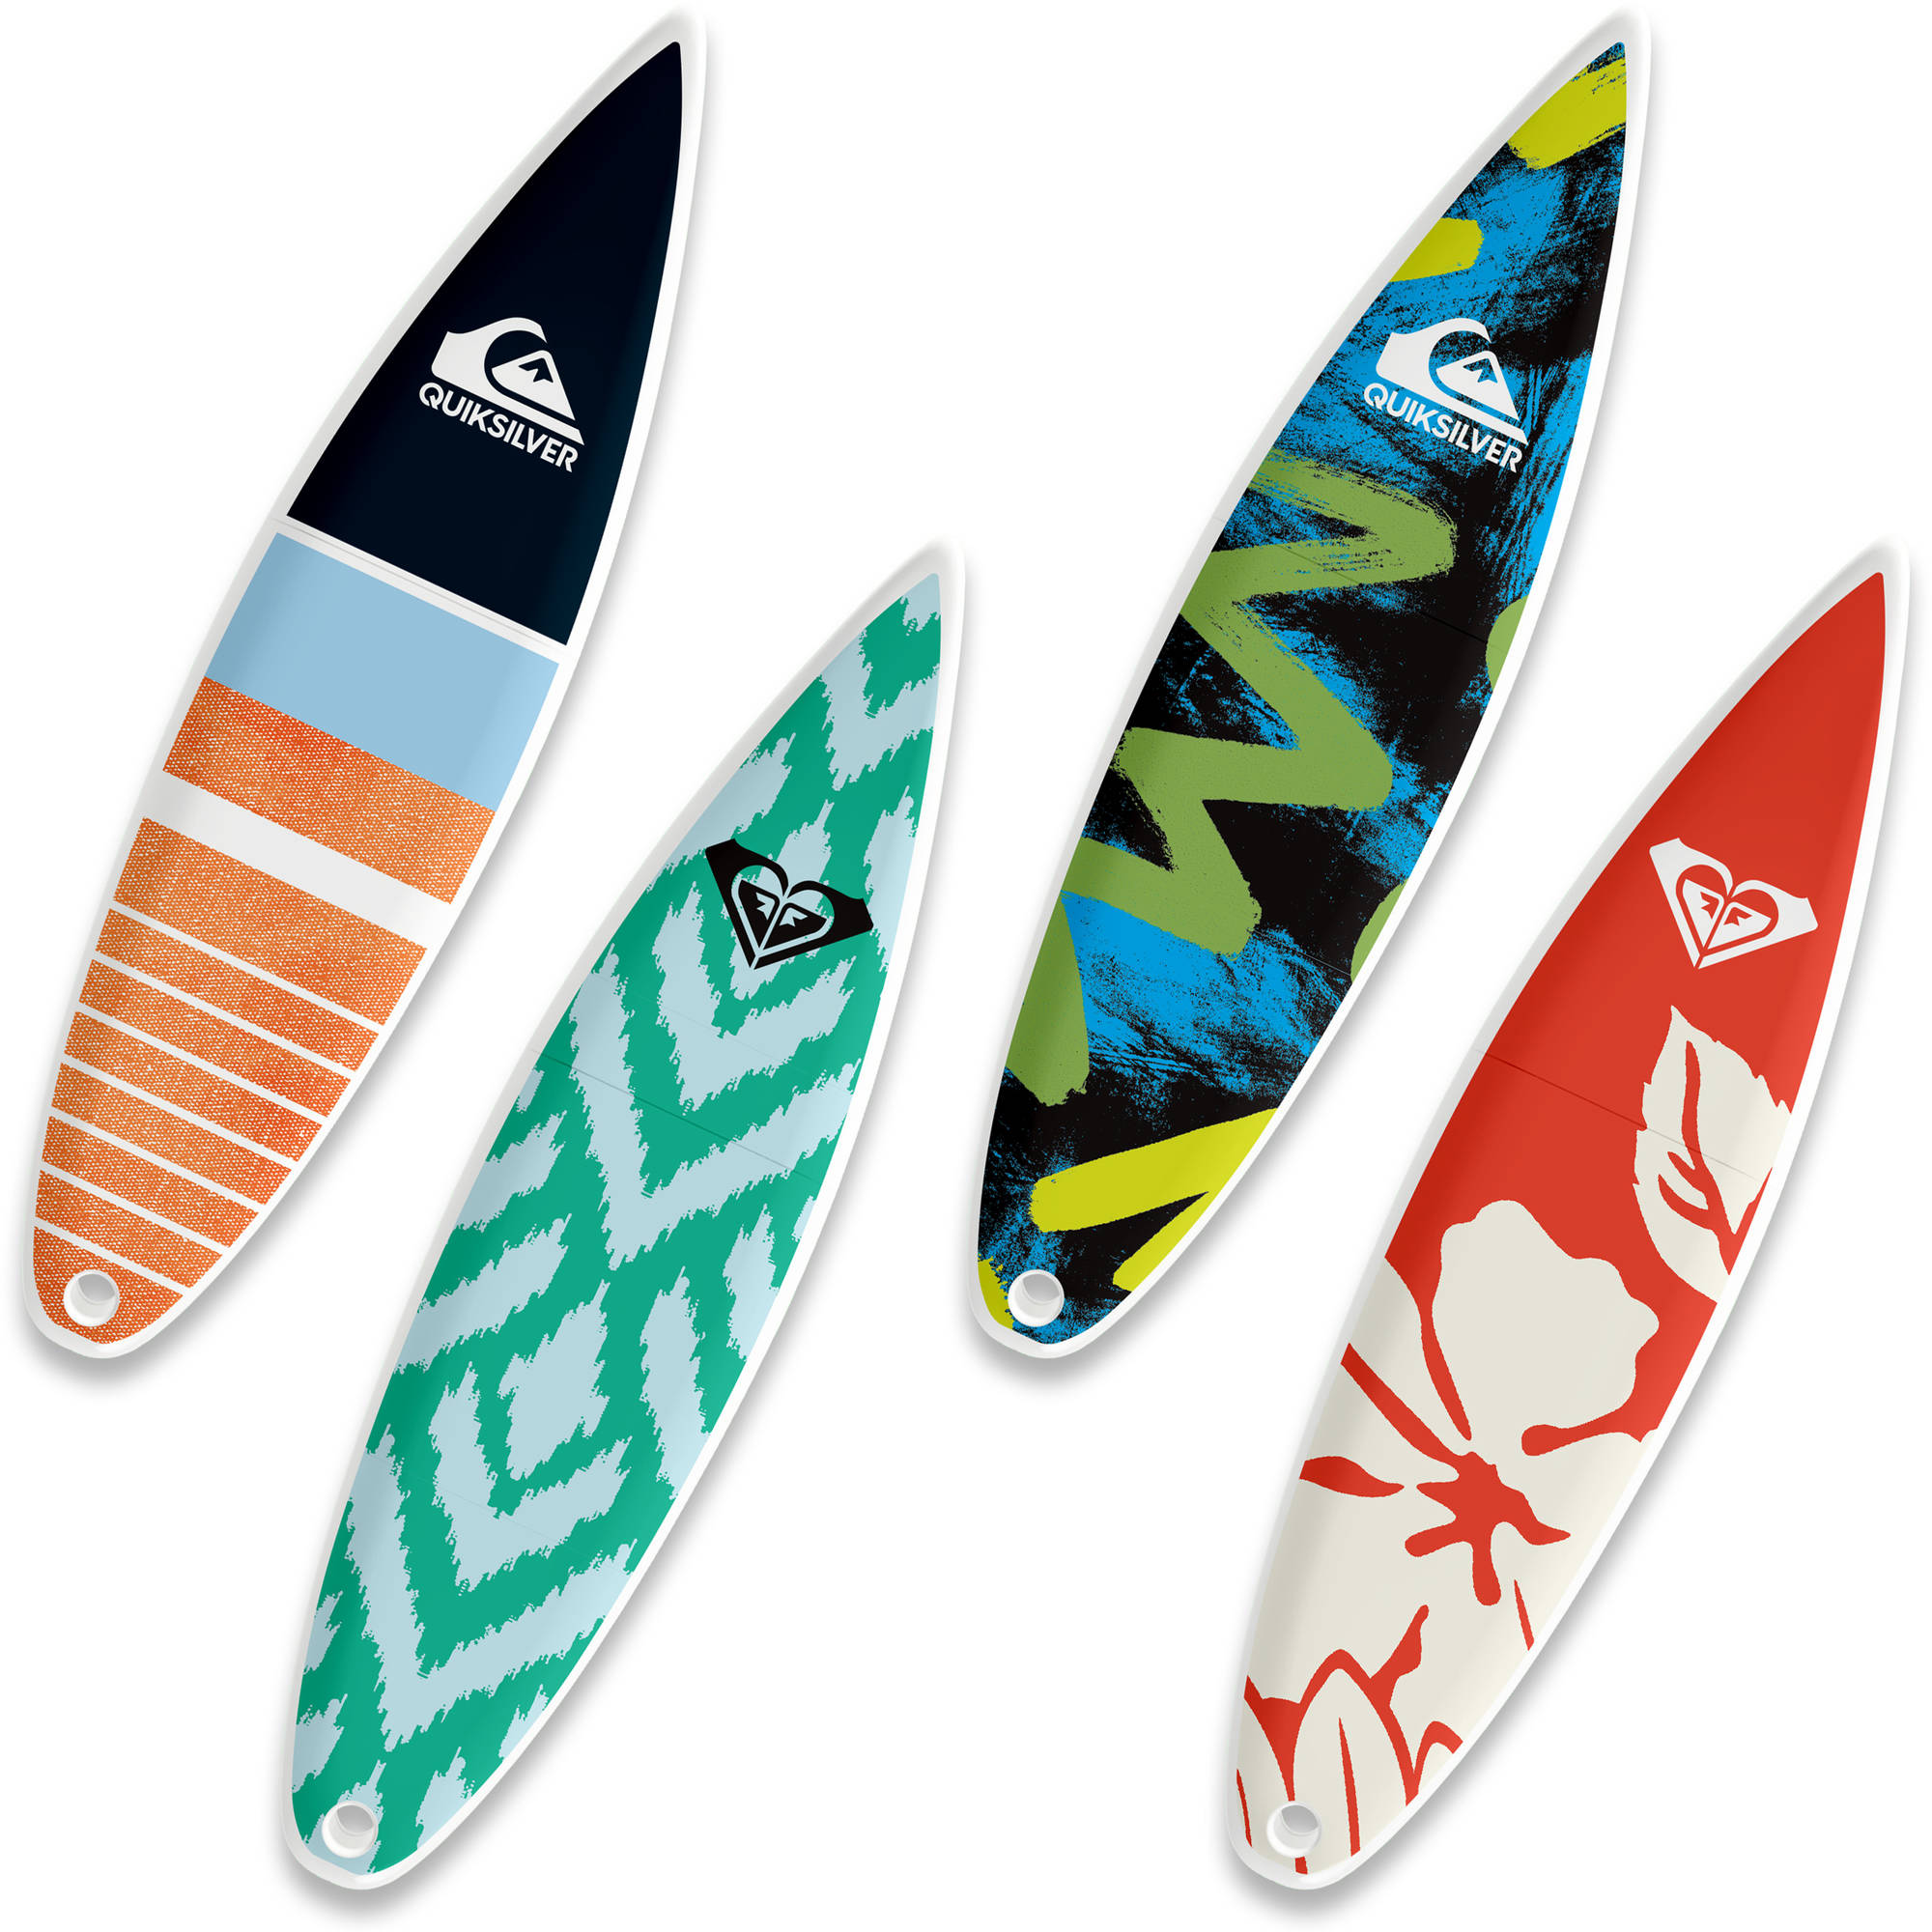 32GB EP ASD USB, Quiksilver SurfDrive and Roxy SurfDrive, 4-Pack